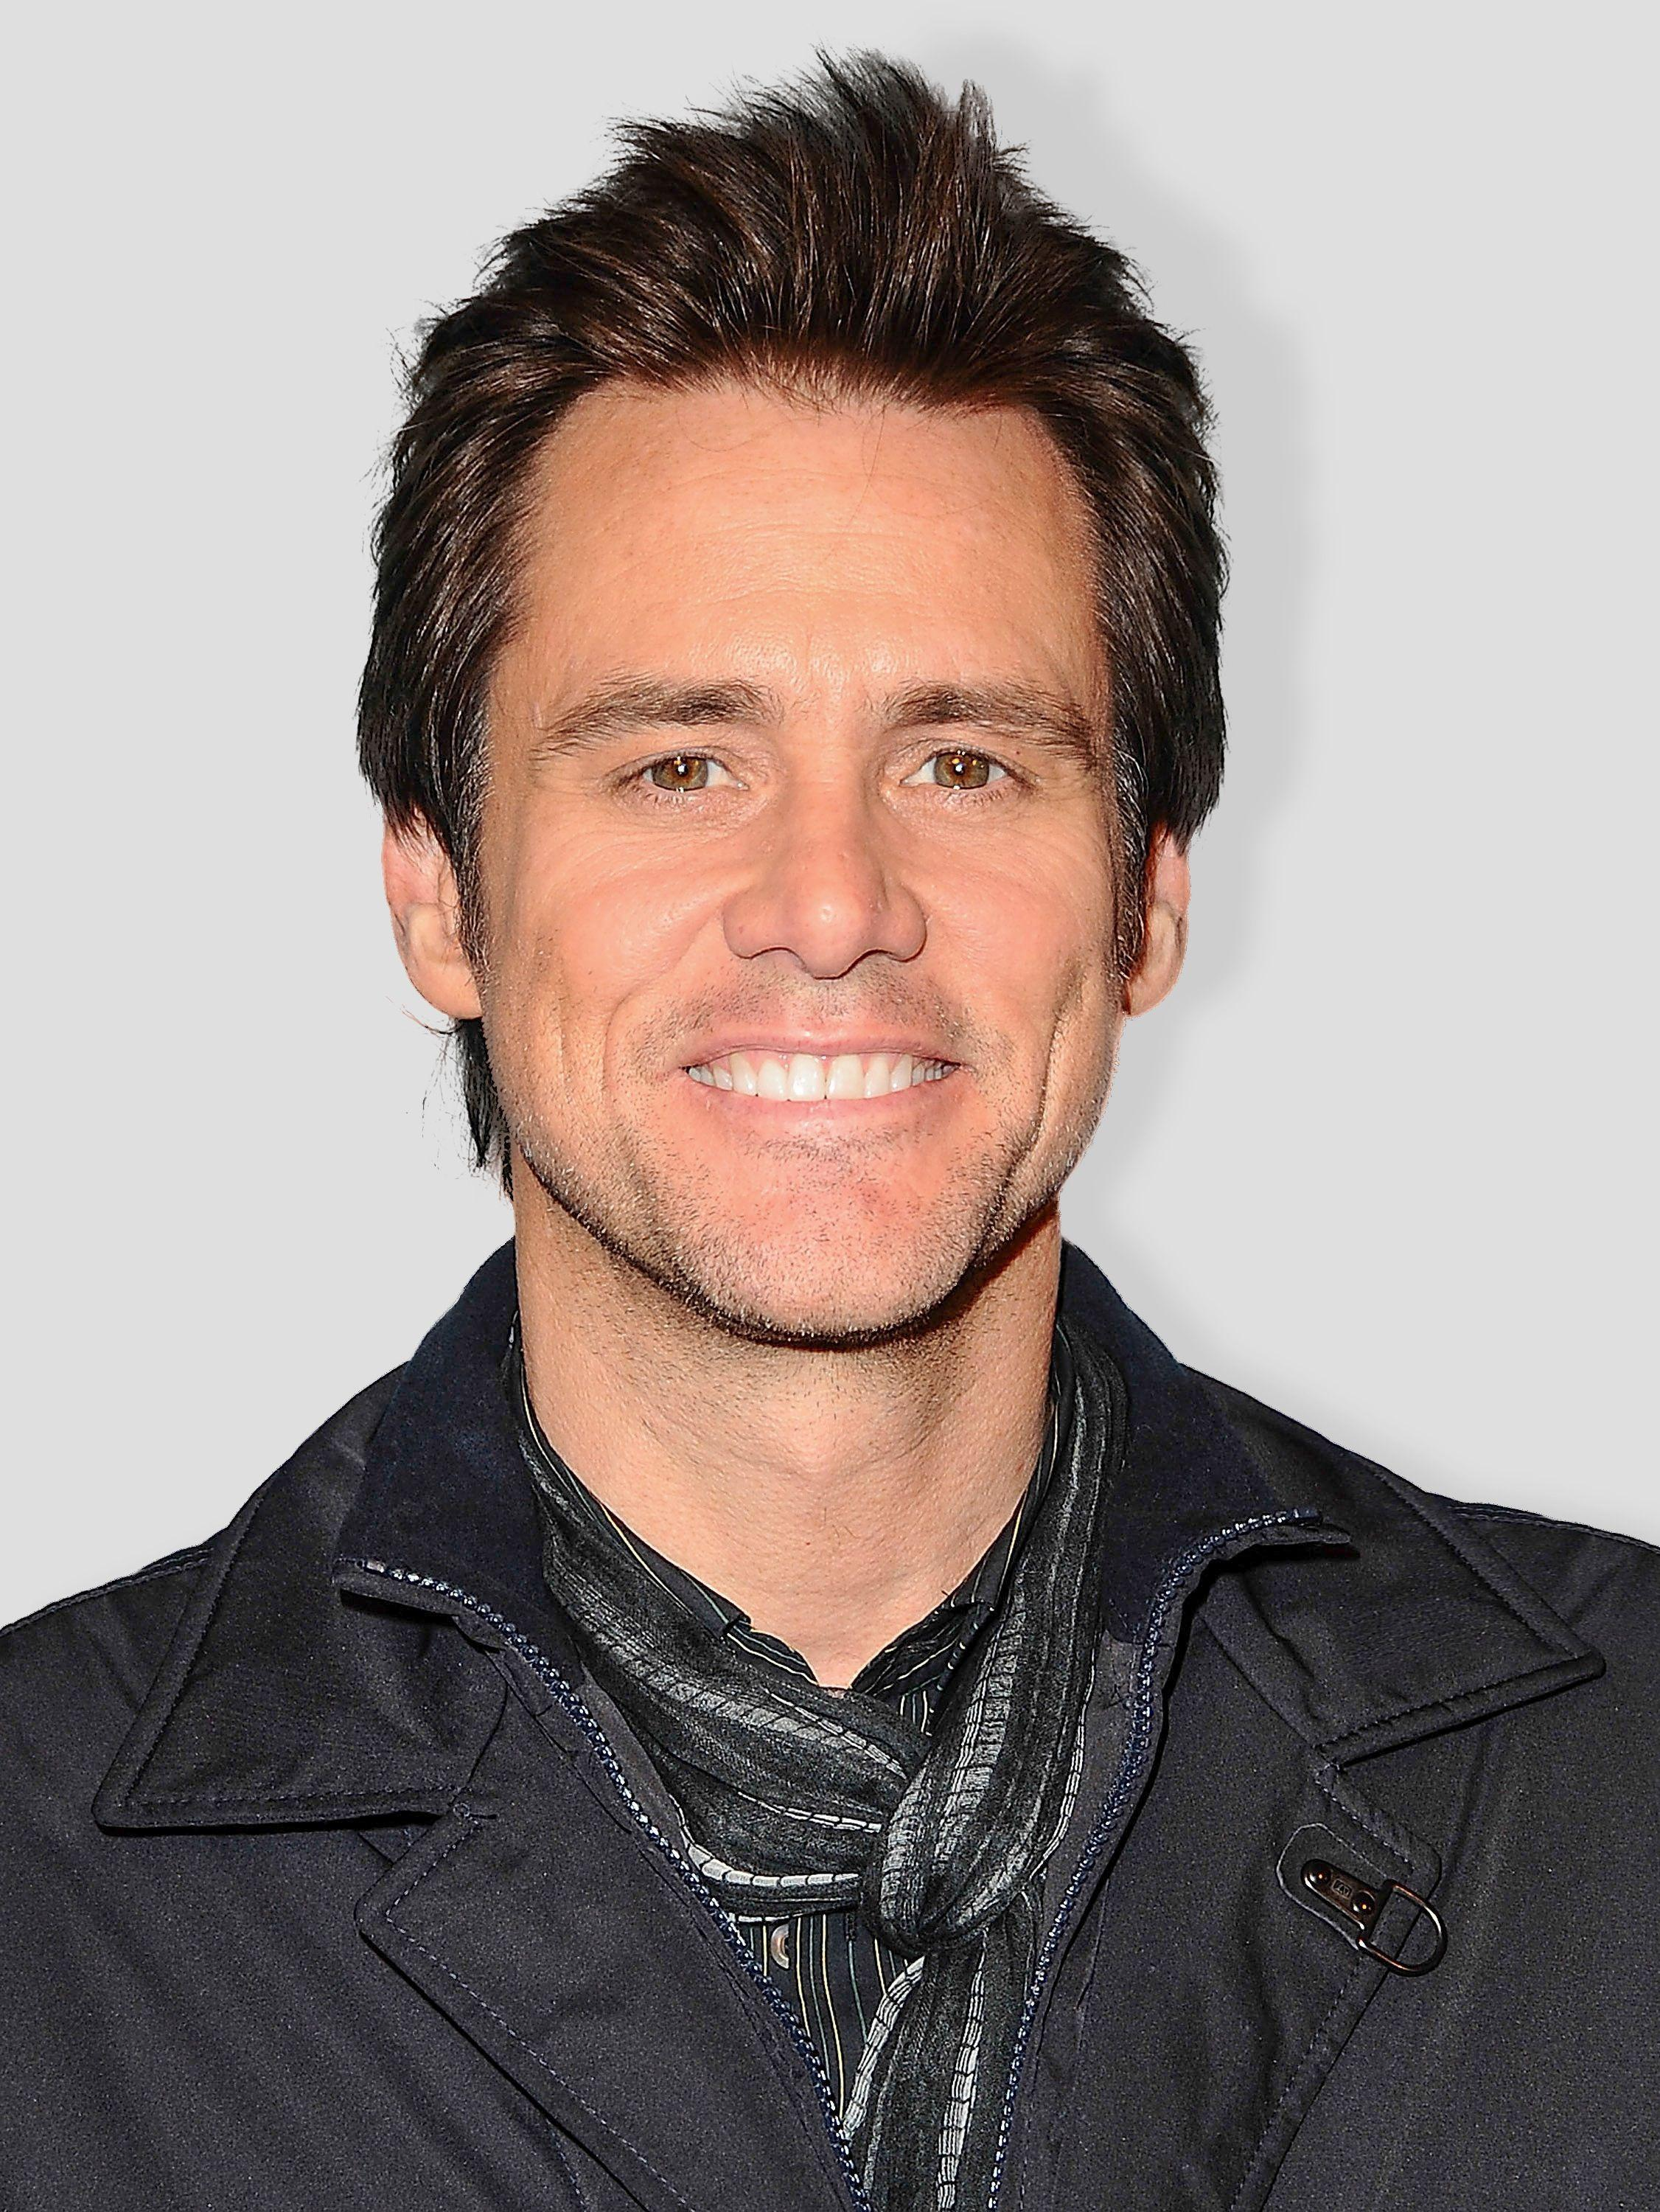 Jim Carrey photos, pictures, stills, image, wallpapers, gallery